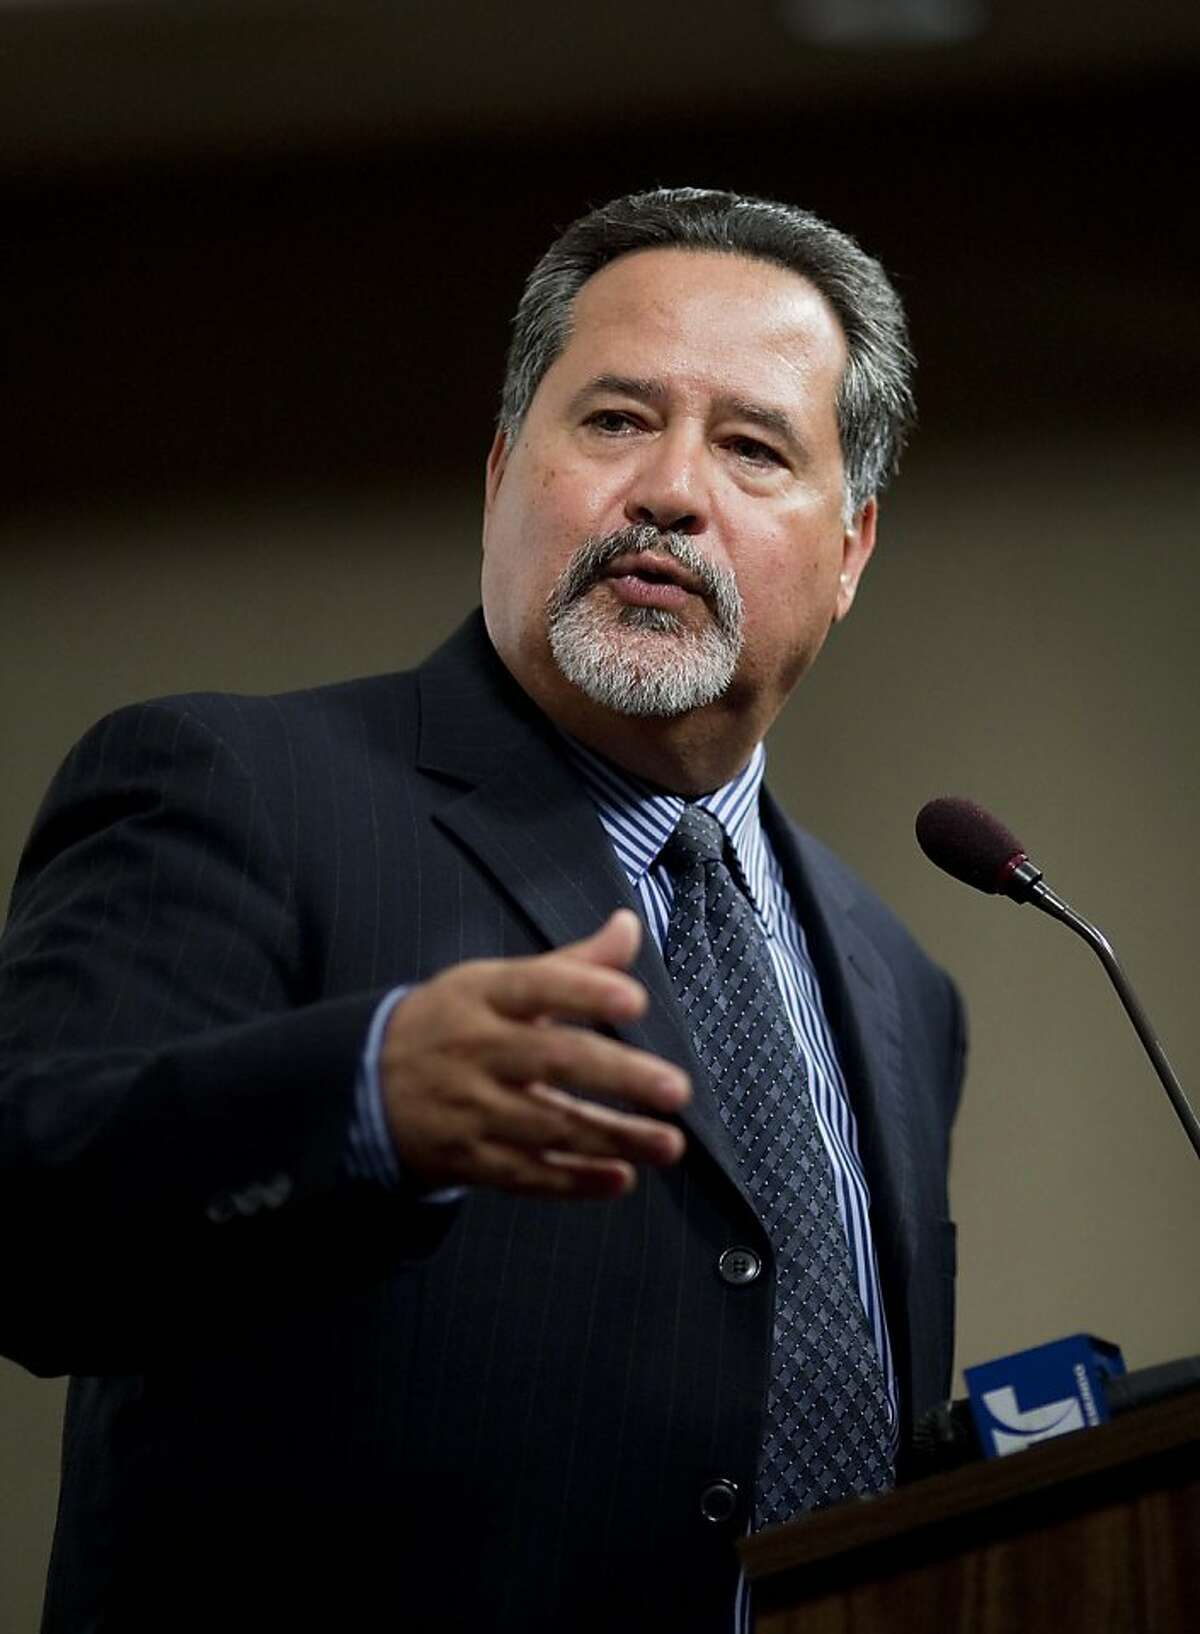 Superintendent Carlos Garcia of the San Francisco Unified School District speaks to members of the media on the district's improved score on the California Standard Test during a press conference at the SFUSD headquarter on Franklin St. in San Francisco, Calif. on Tuesday, Aug. 18, 2009.